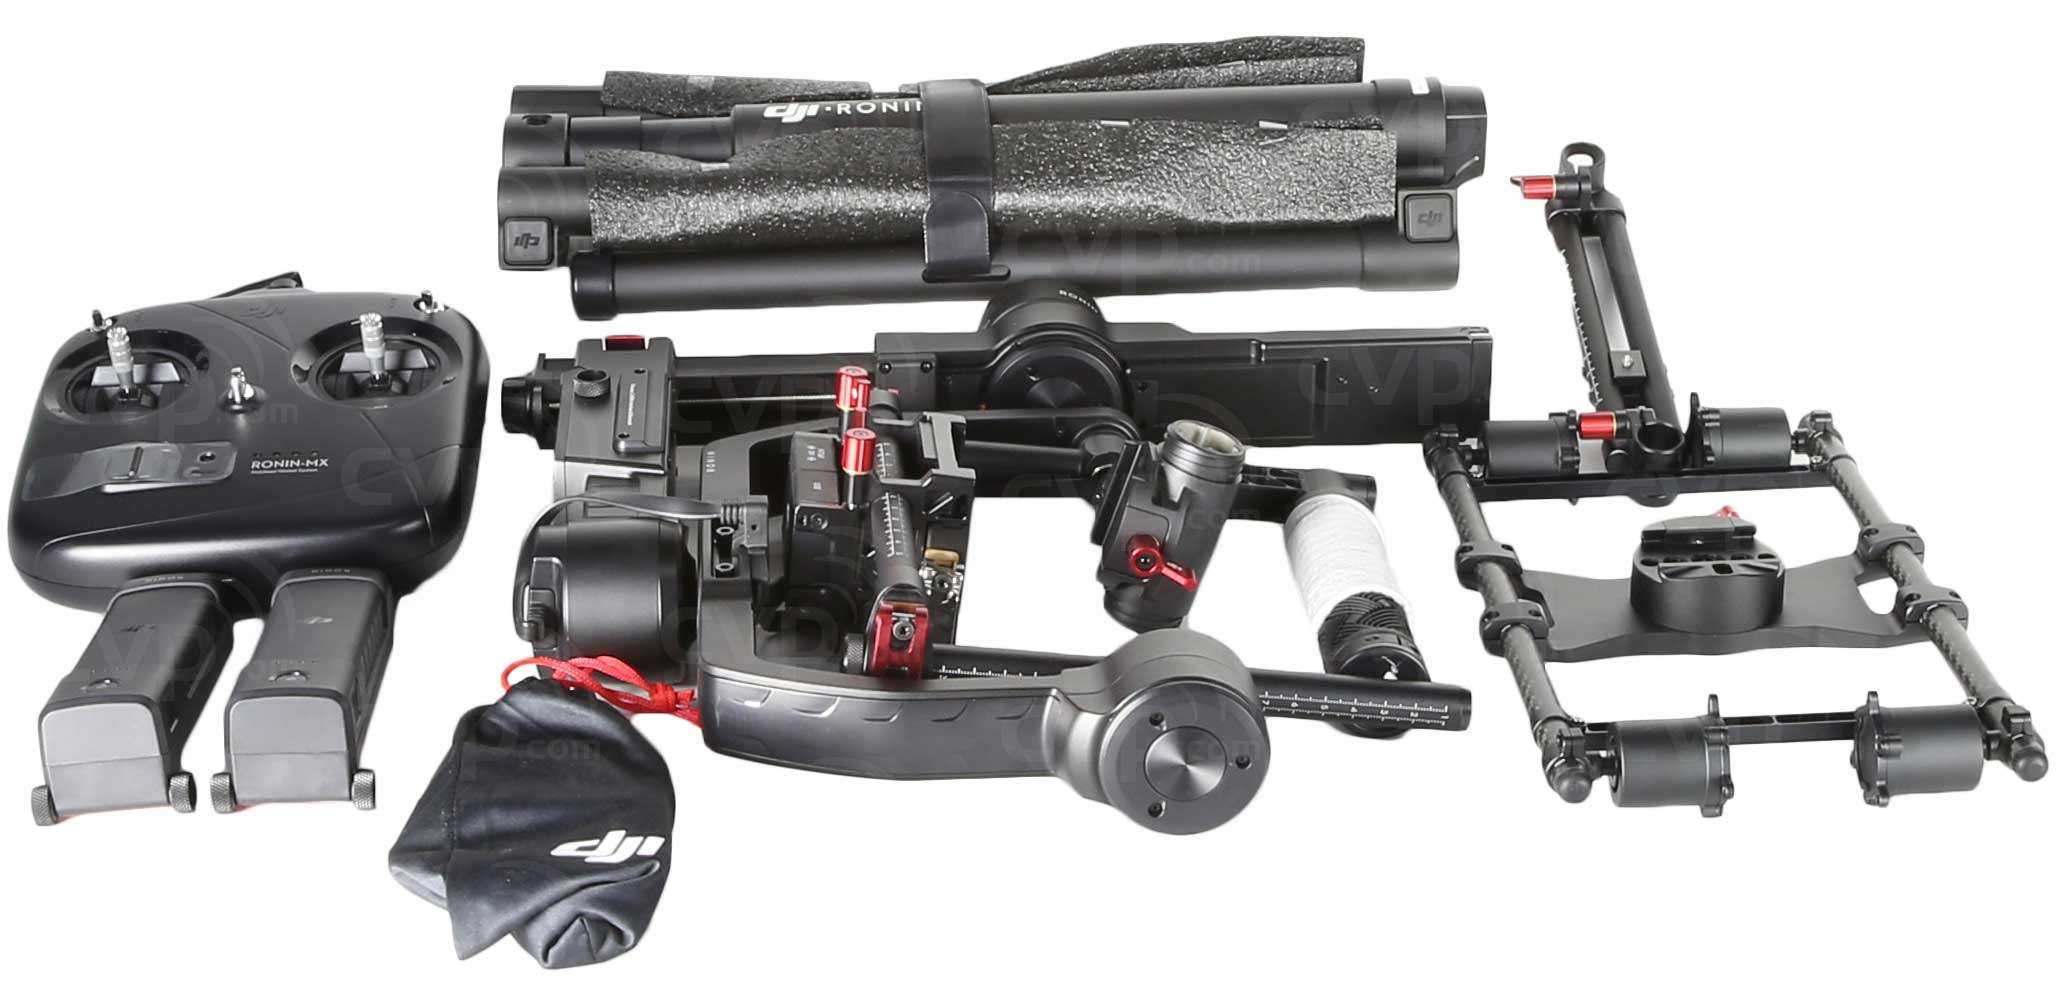 Open Box DJI Ronin-MX with Grip and Wireless Controller